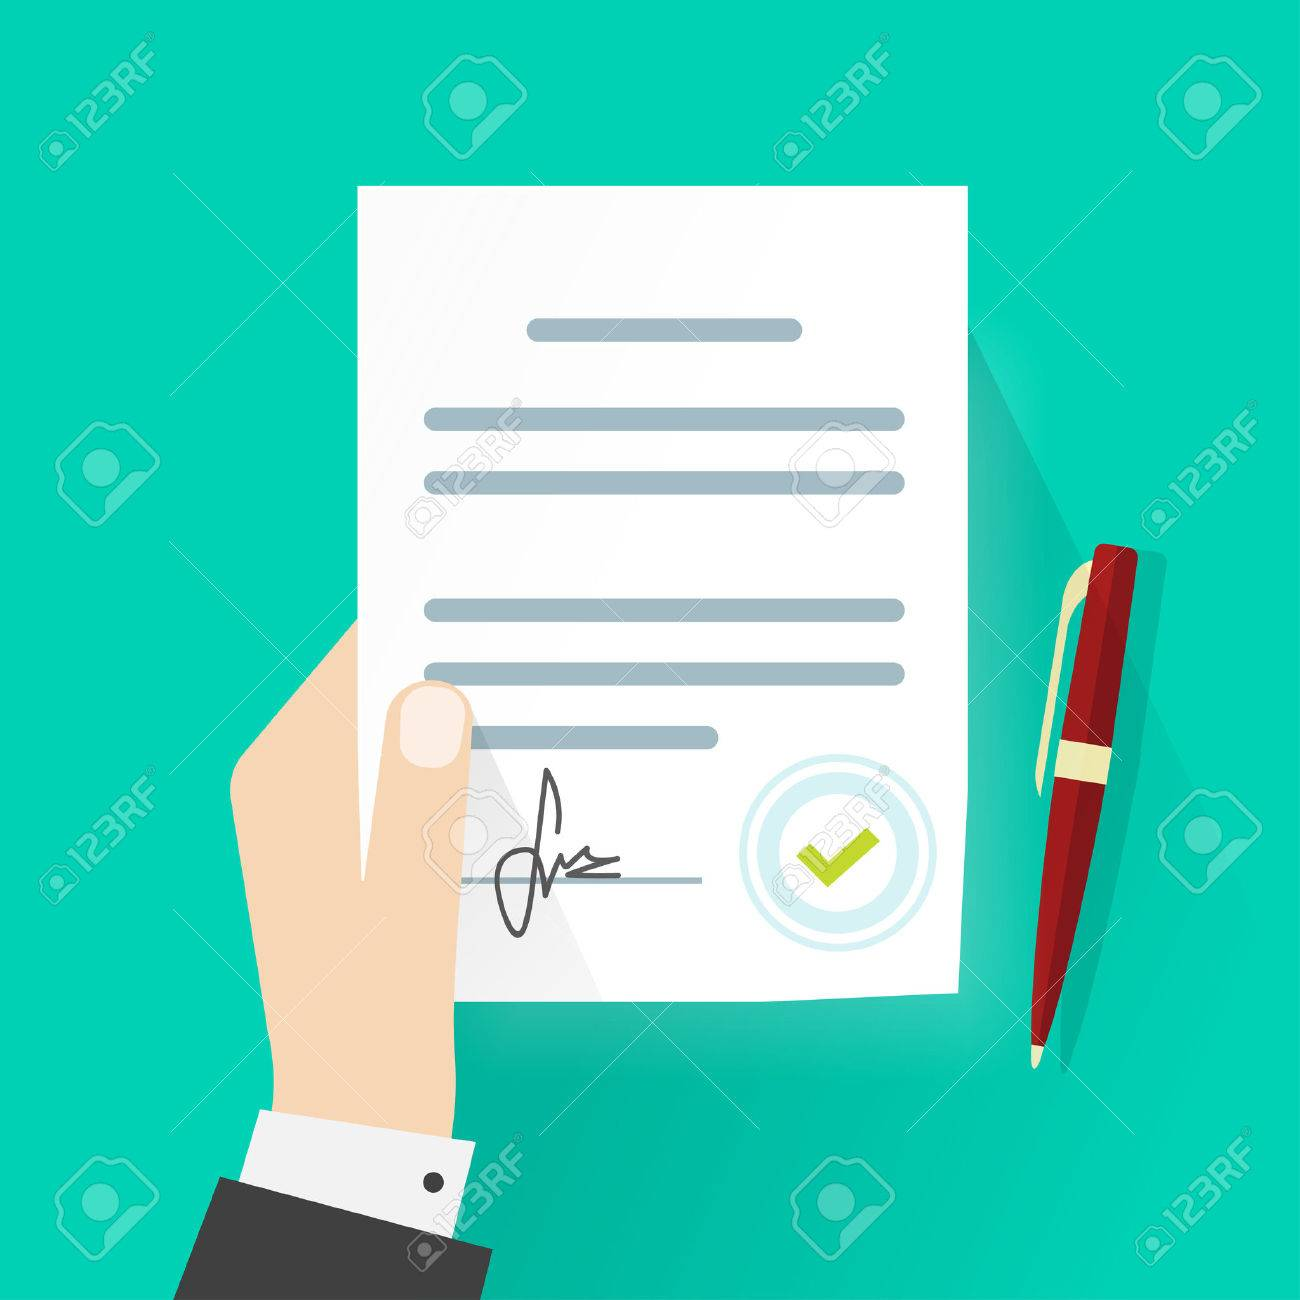 Business man hand holding contract agreement vector illustration, signed treaty paper with pen, legal document symbol with stamp, documentation flat sign modern design isolated on green background - 59051079